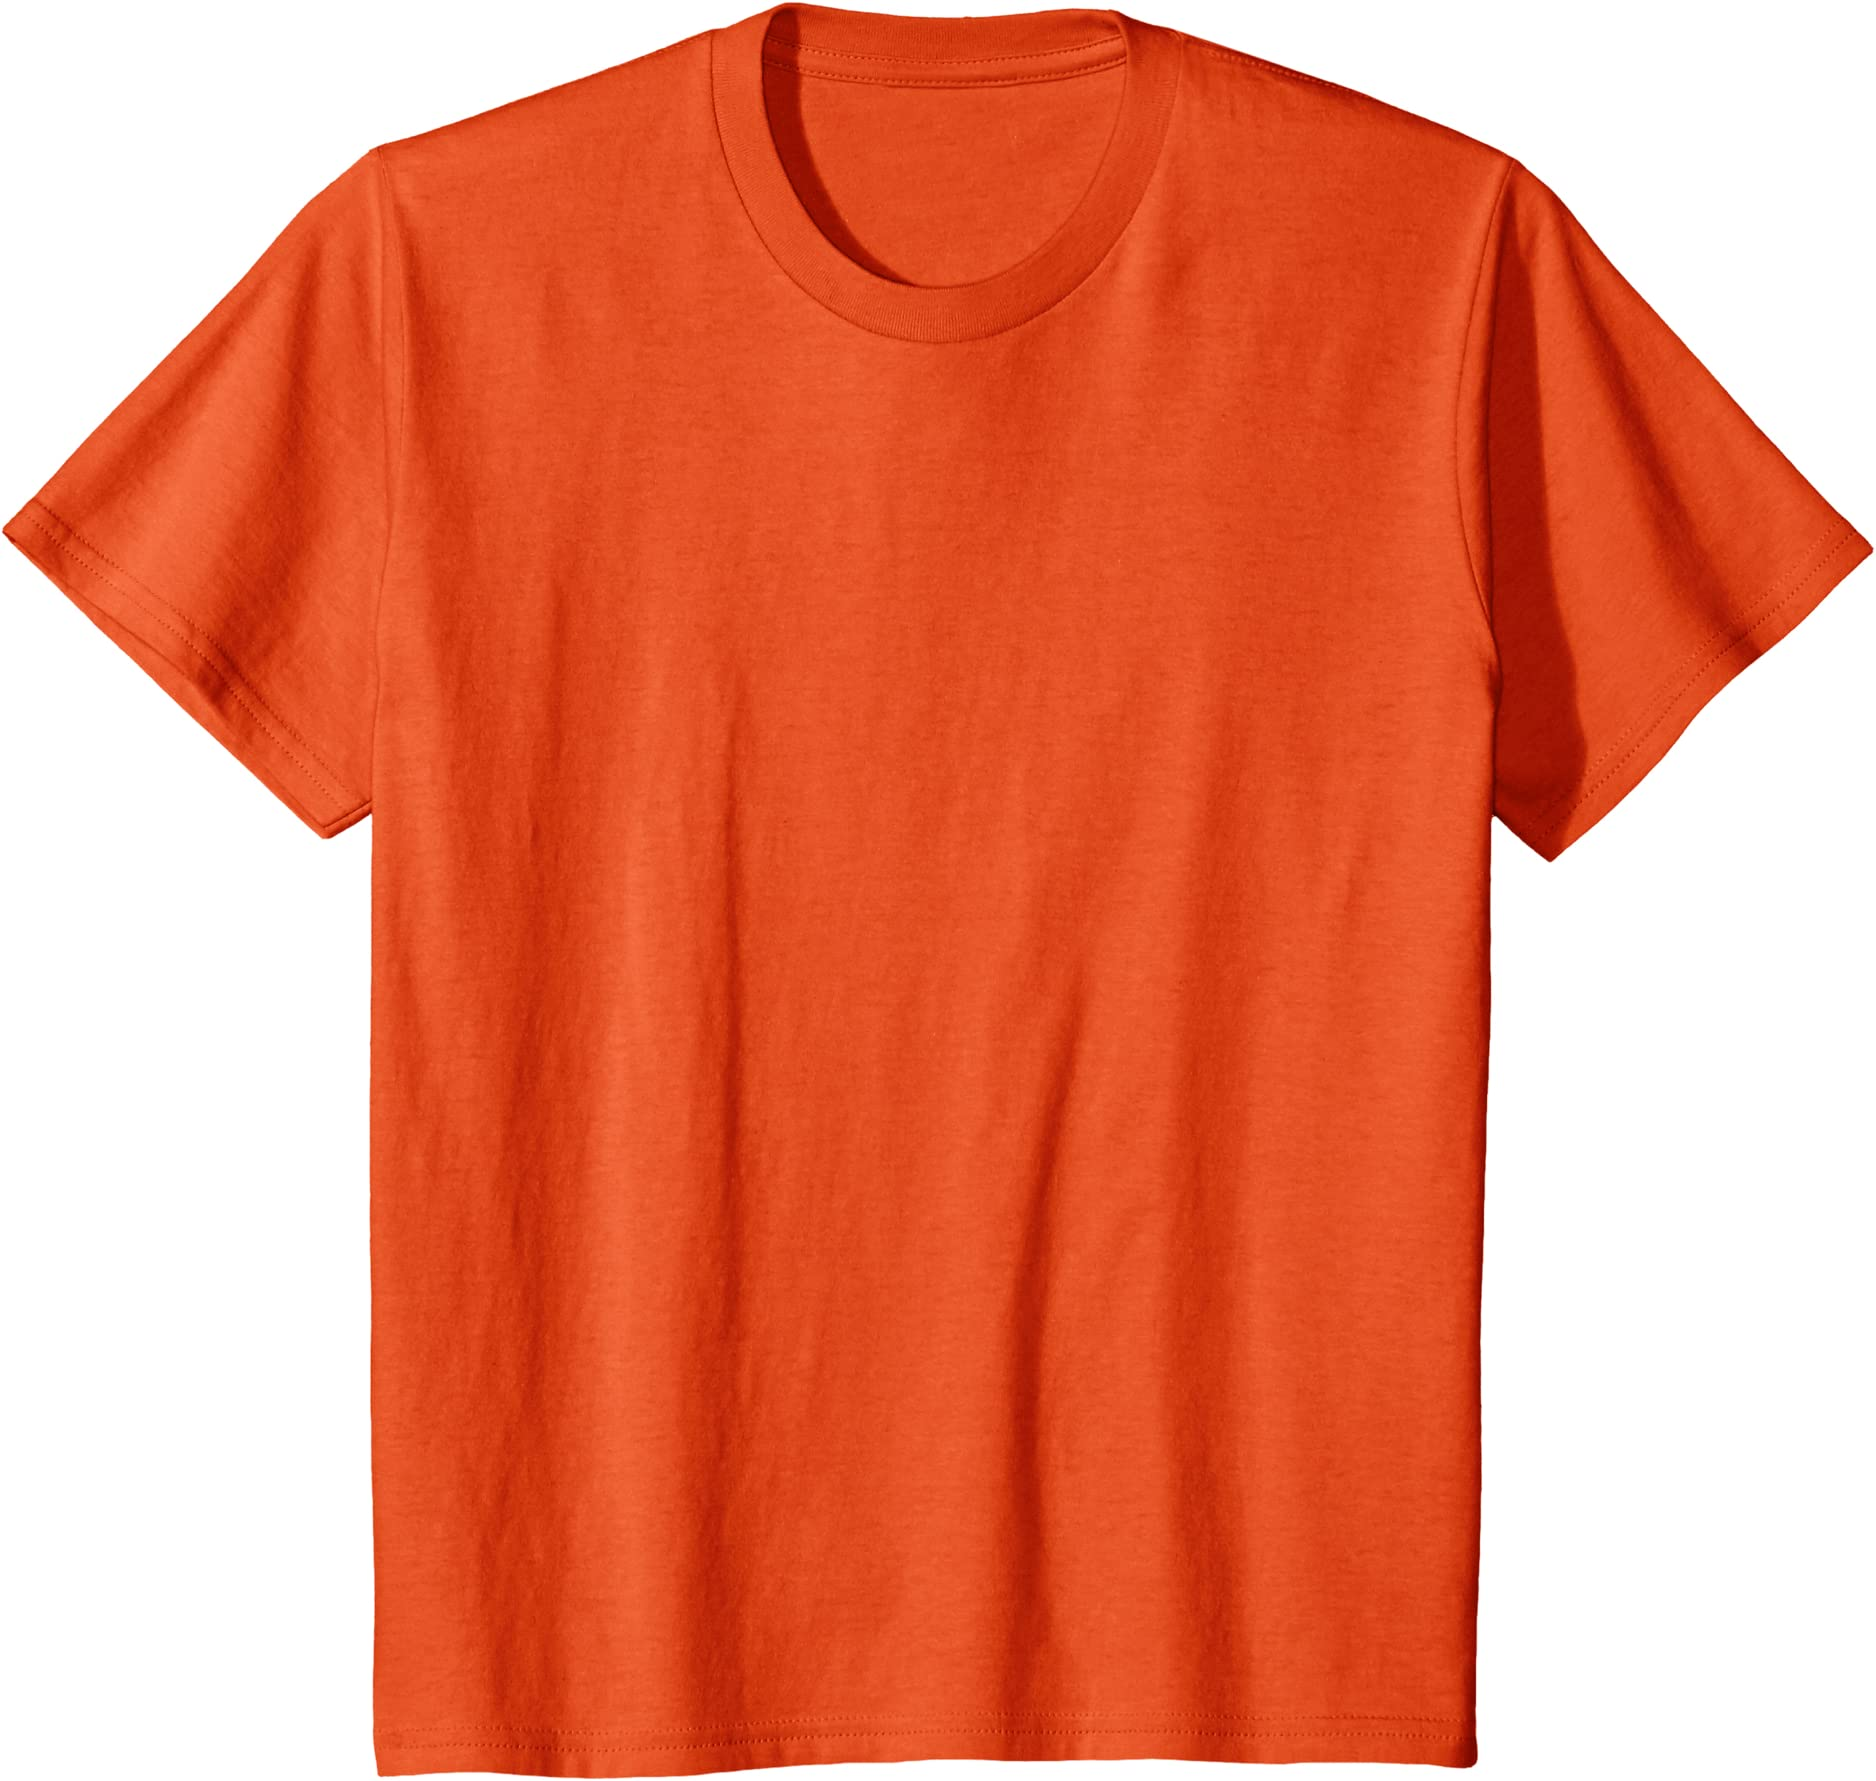 PRISON,HALLOWEEN,FANCY DRESS,FUN ORANGE T SHIRT COUNTY JAIL